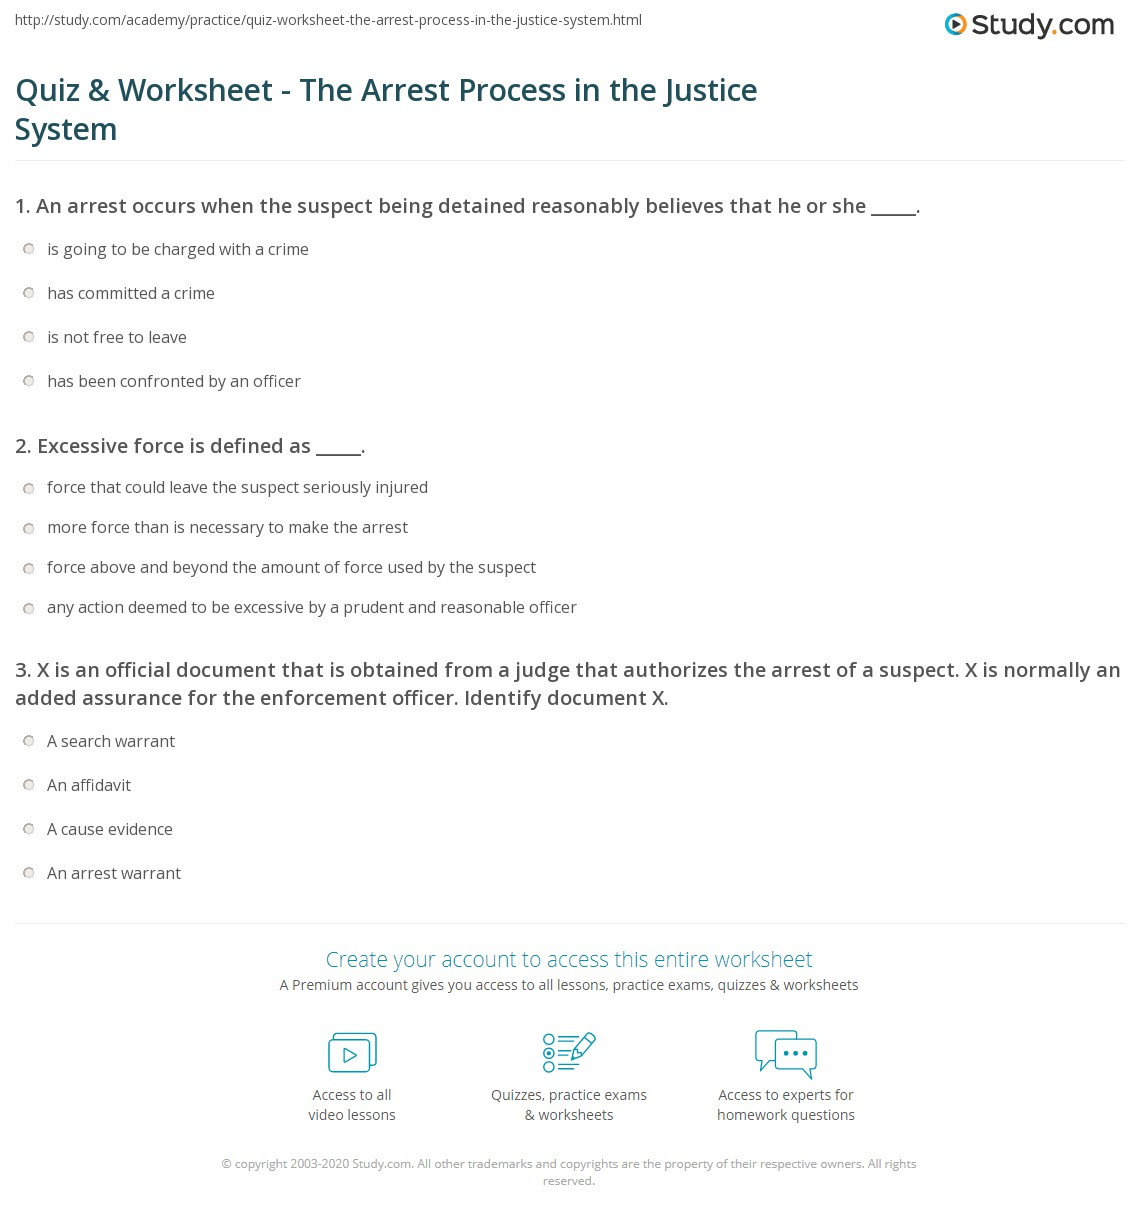 Quiz & Worksheet - The Arrest Process in the Justice System   Study.com